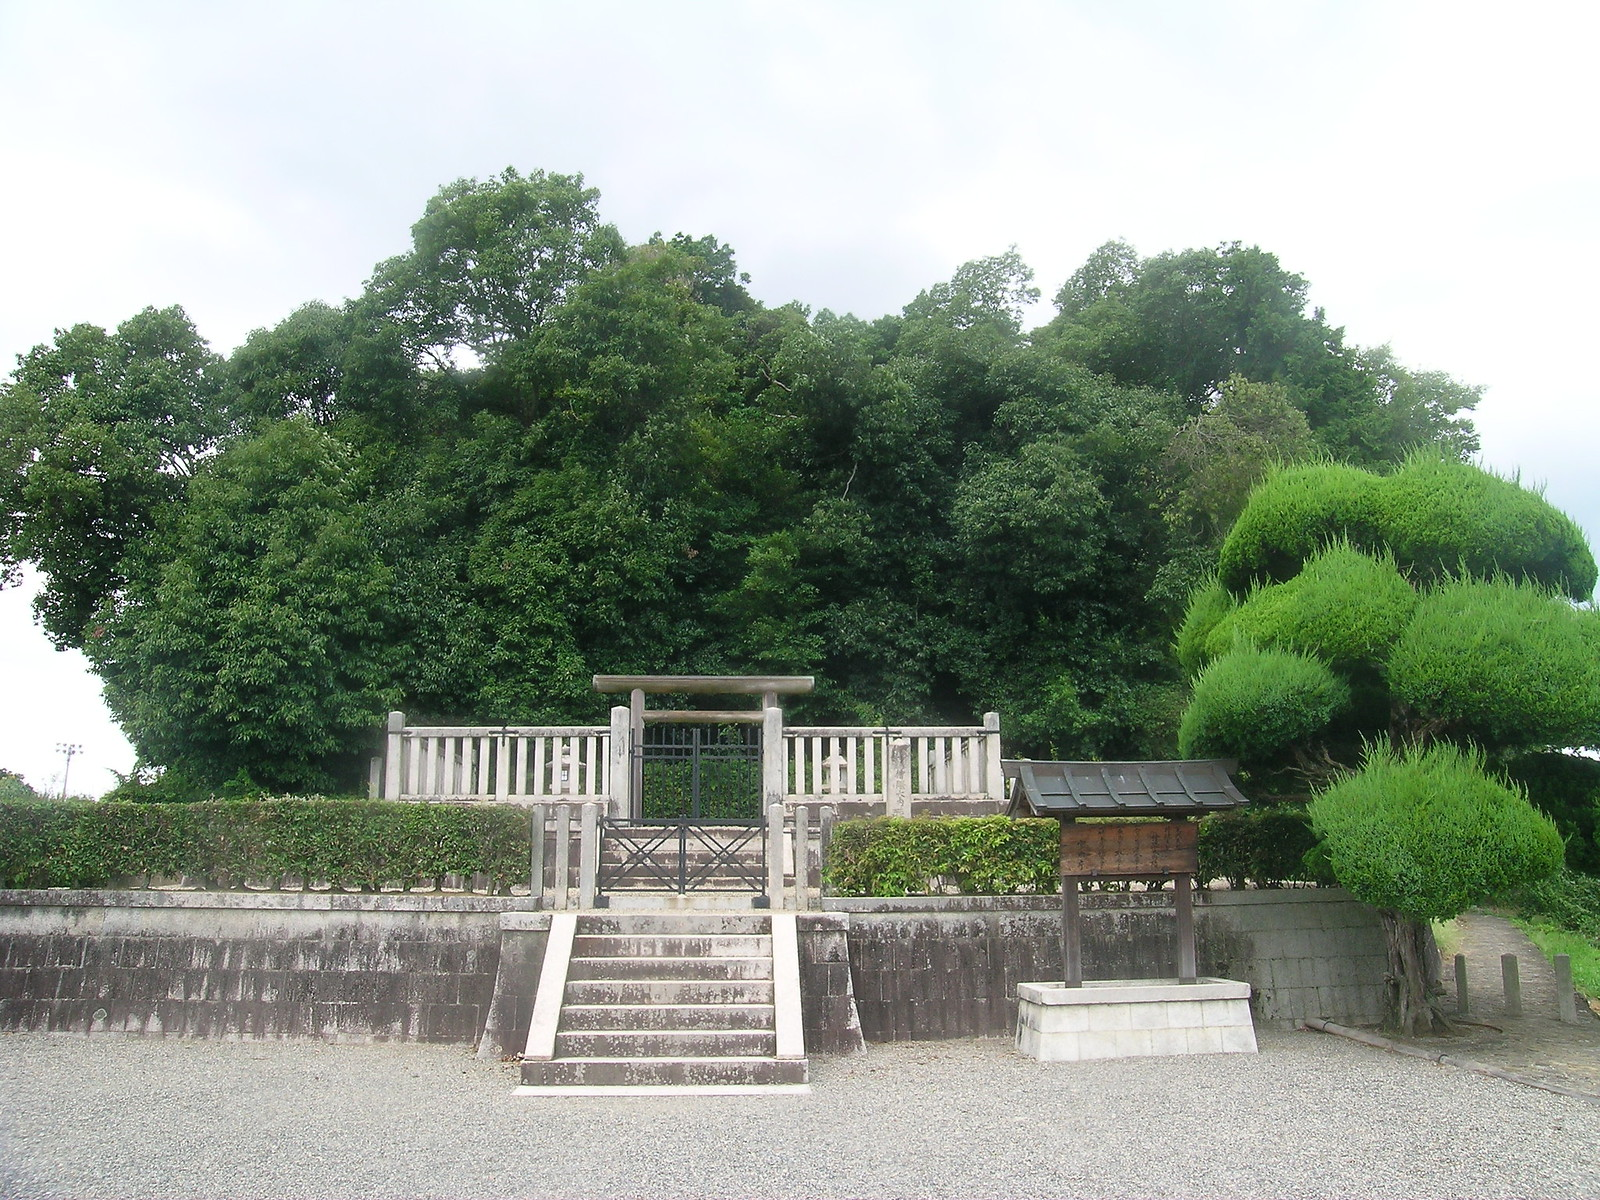 Grave of Emperor Tenmu and Empress Jito, Asuka, Nara